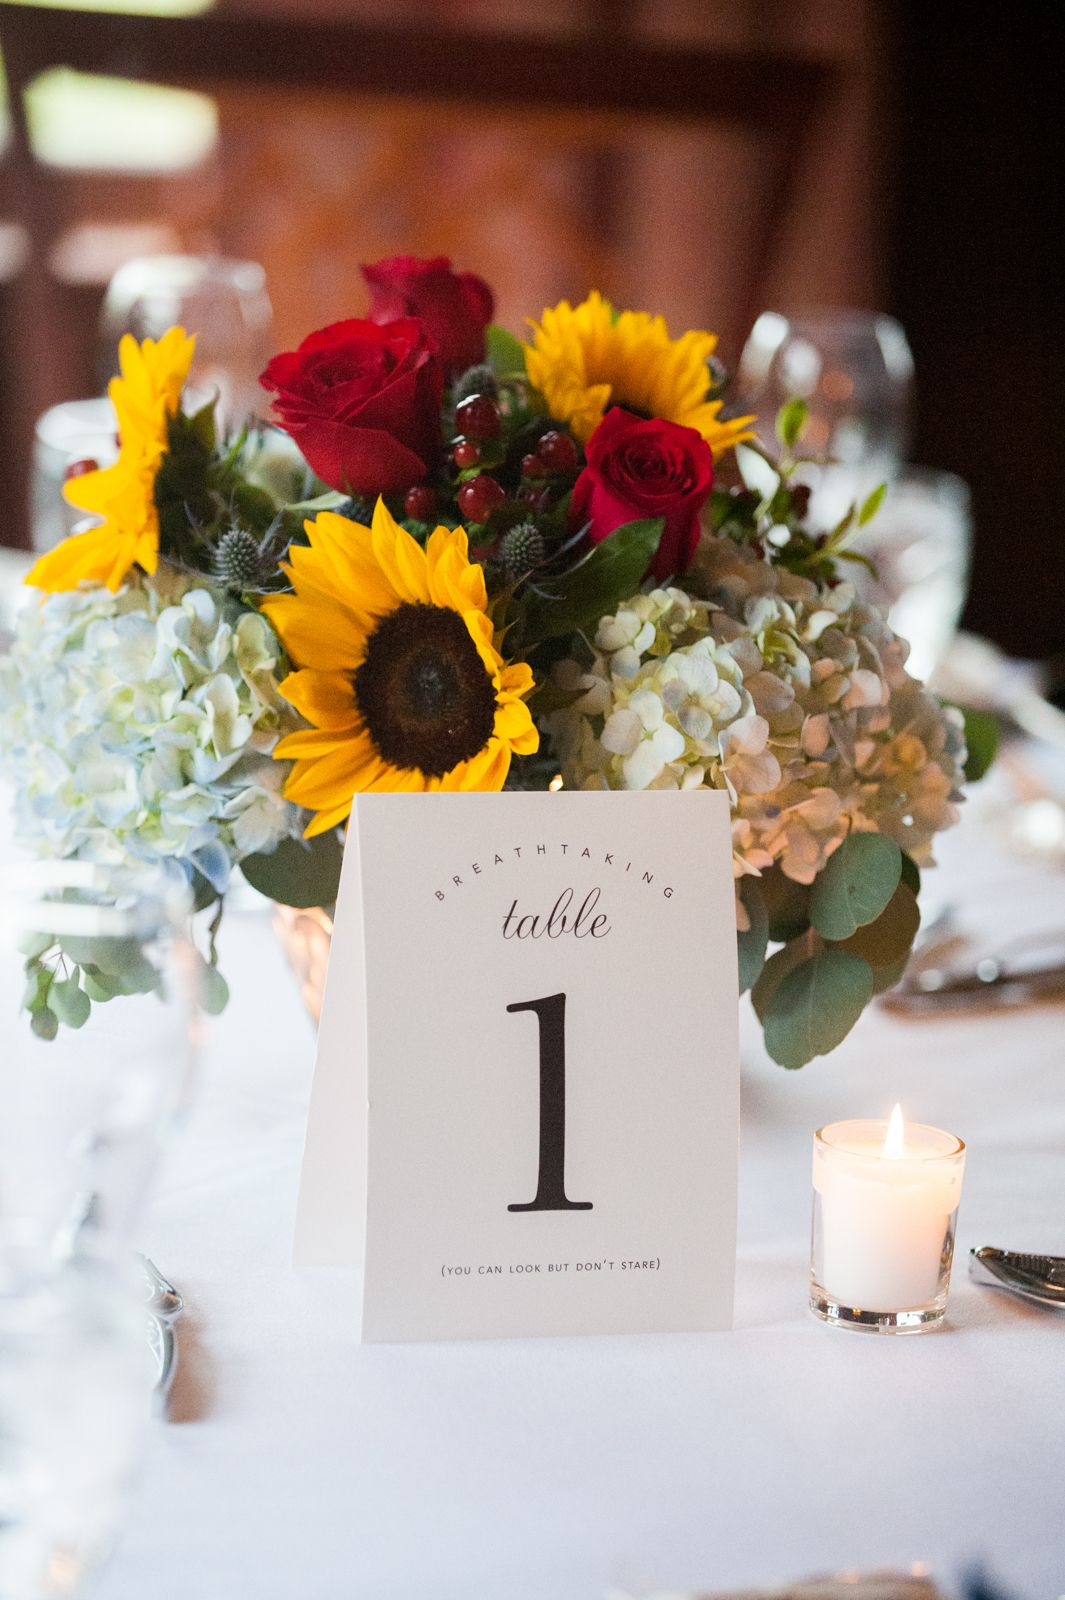 Wedding Reception Table Decorations Sunflowers Red Roses And